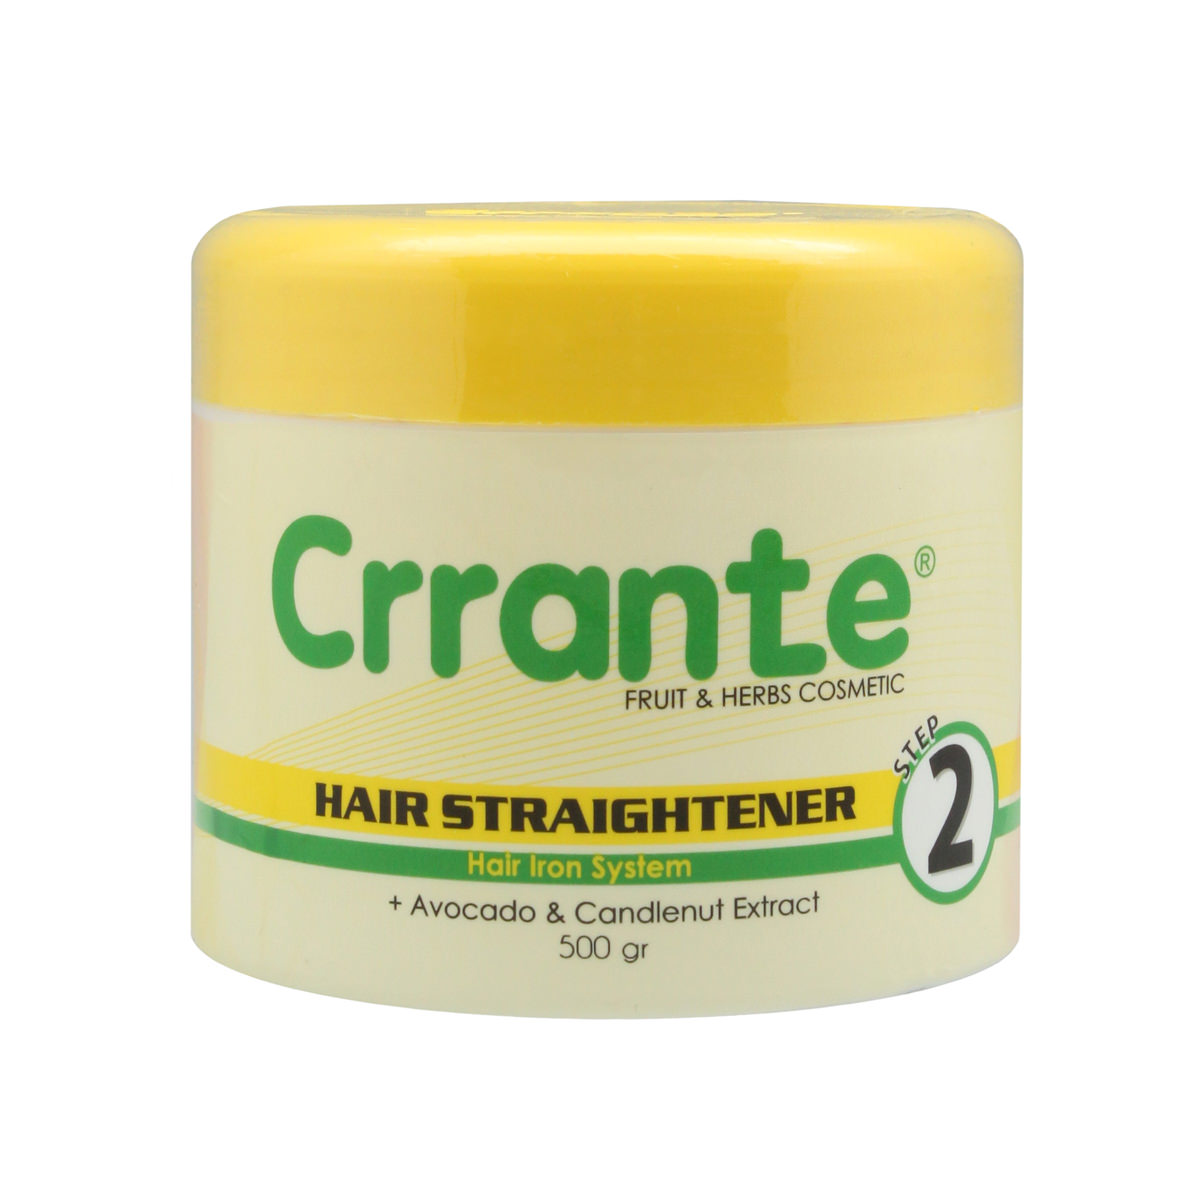 Crrante-Hair-Straightener-Step-2-high-sfw(1)